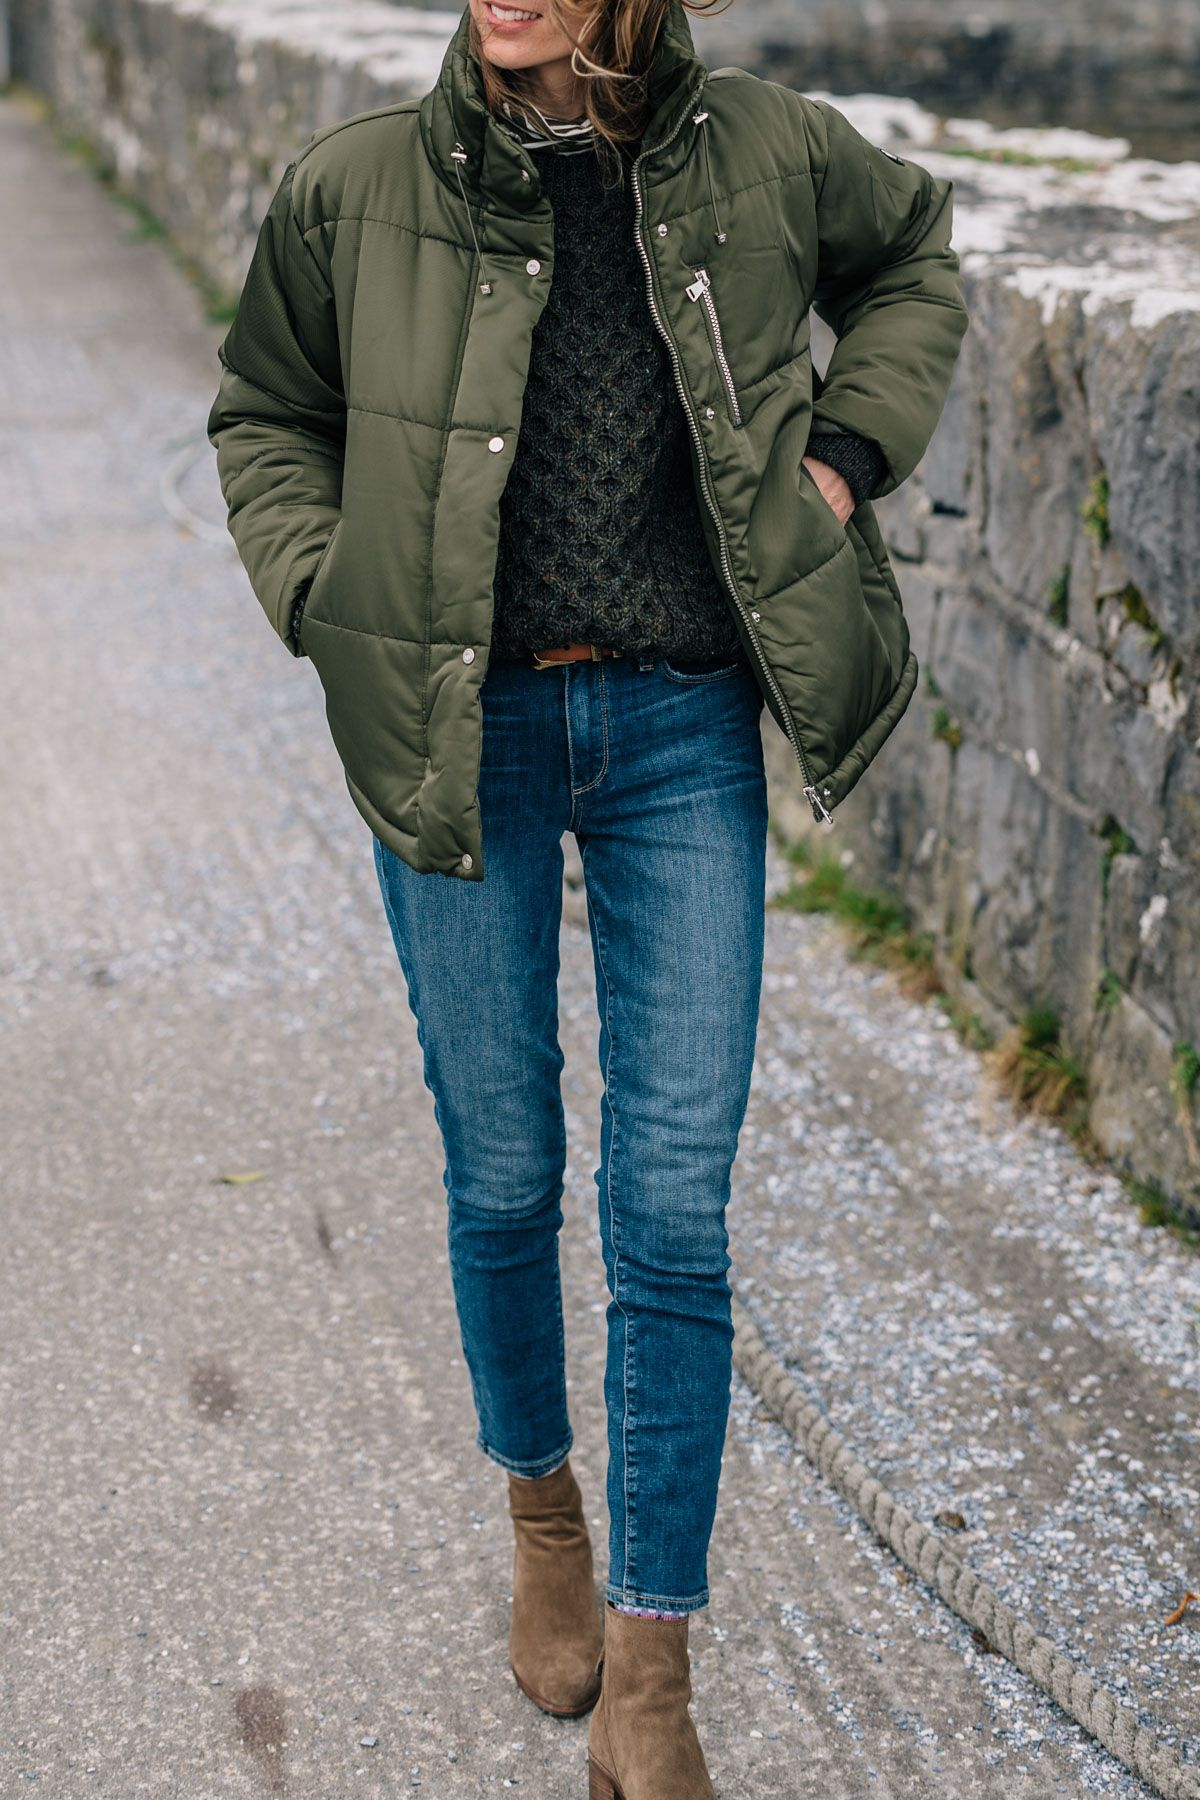 Fall Outerwear Trends The Puffer Coat Jess Ann Kirby Outerwear Trends Fall Outerwear Winter Jacket Outfits [ 1800 x 1200 Pixel ]